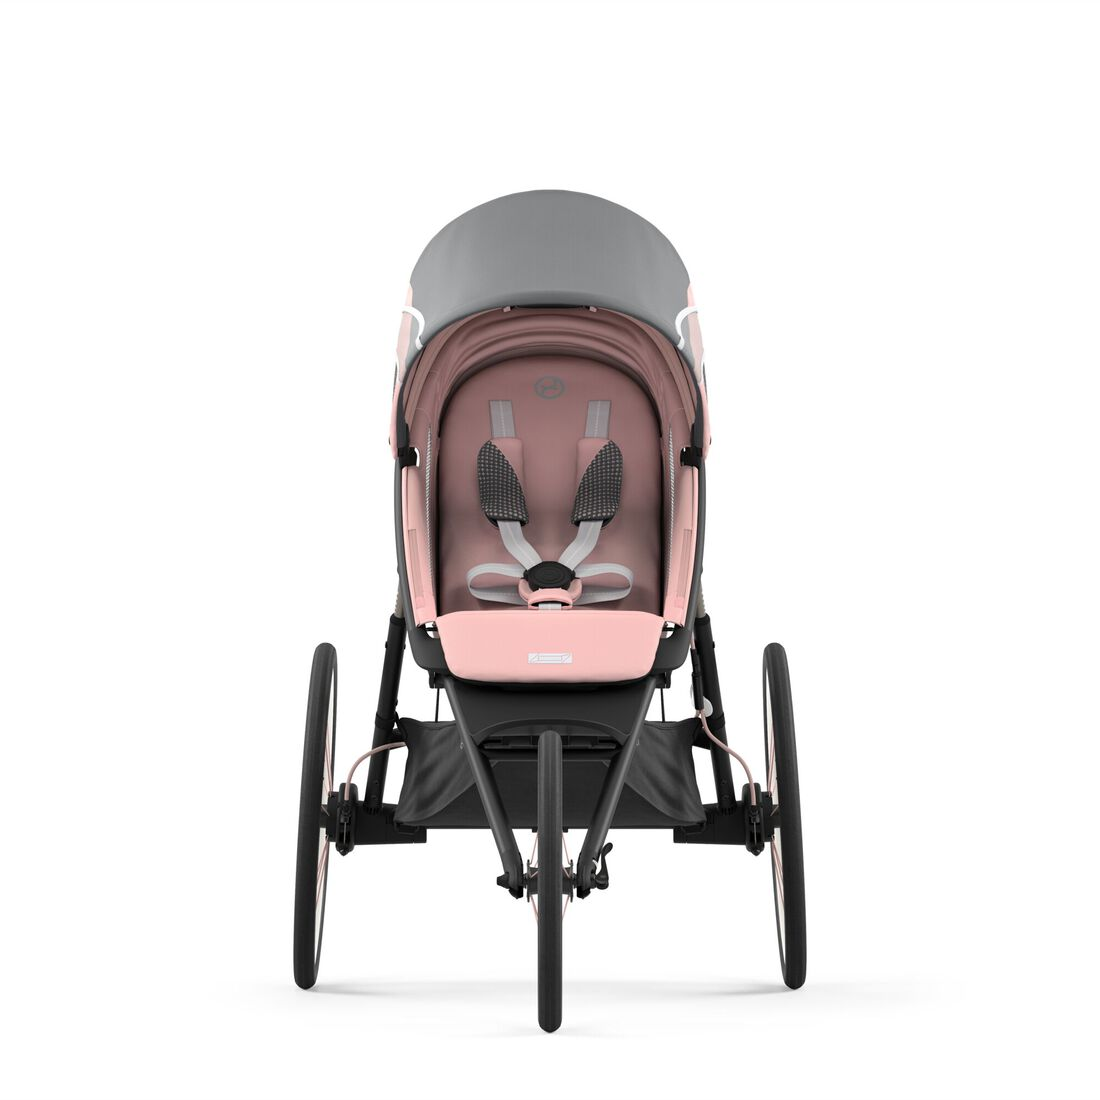 CYBEX Avi Frame - Black With Pink Details in Black With Pink Details large image number 3